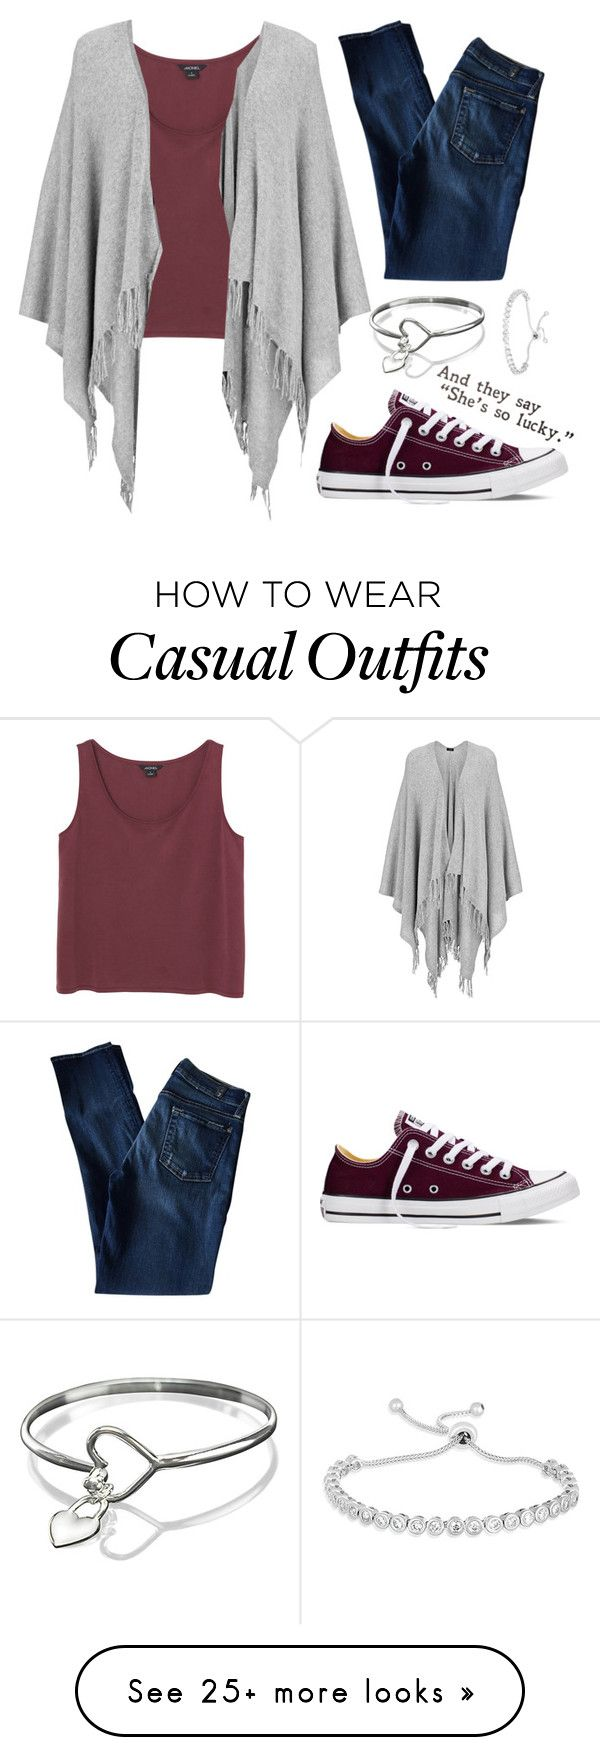 """""""casual"""" by hc-sorme on Polyvore featuring Converse, Monki, Joseph, 7 For All Mankind, women's clothing, women's fashion, women, female, woman and misses"""